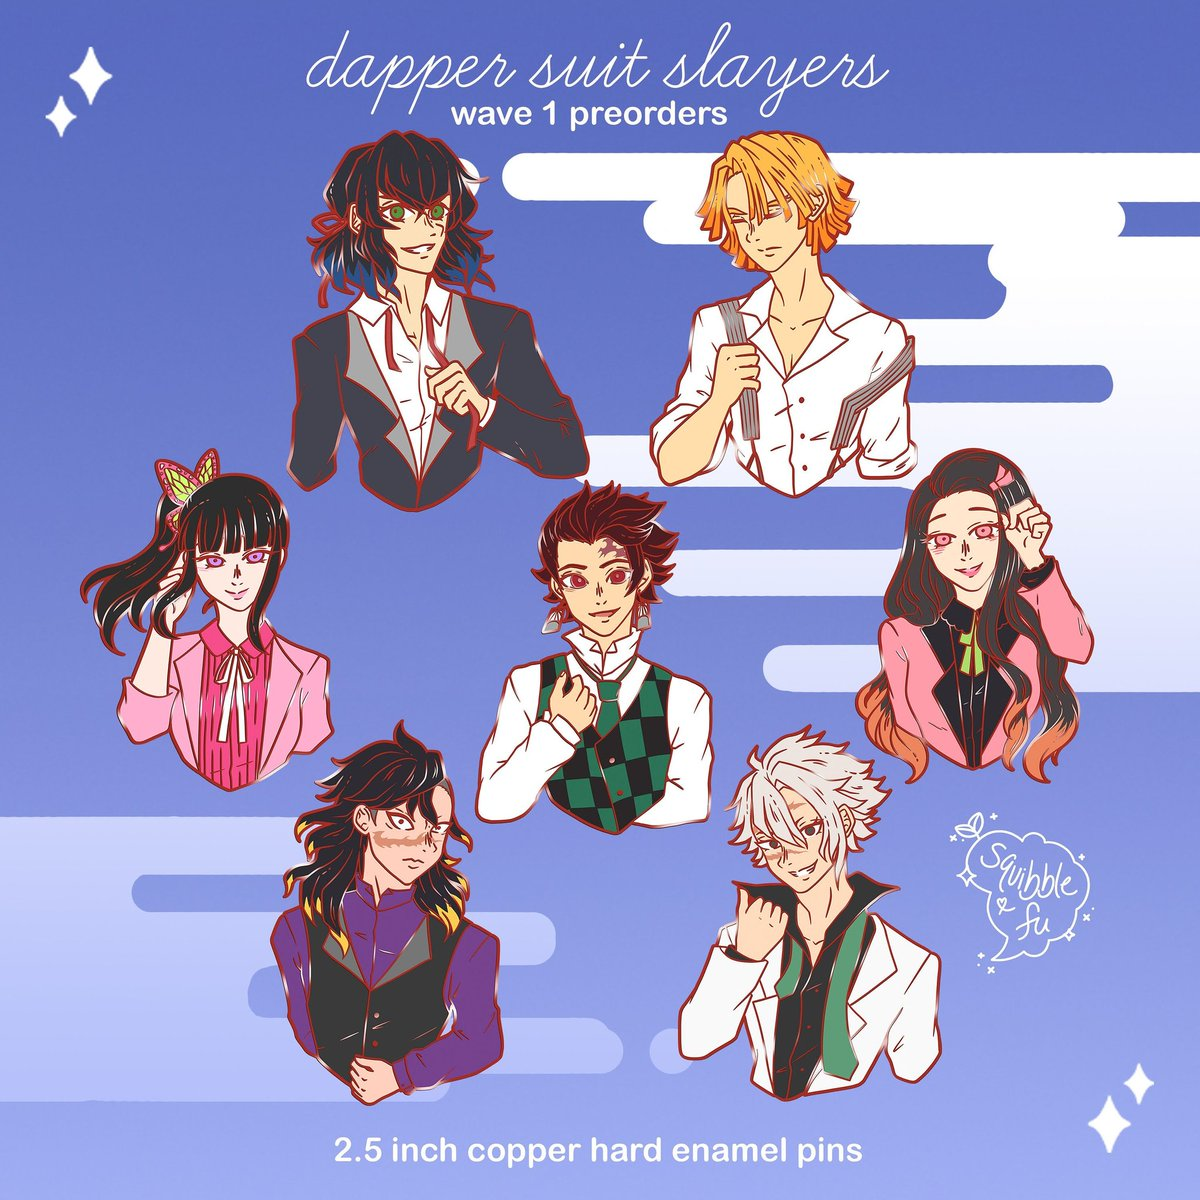 ONE DAY and a half left to pre-order my Dapper Suit Slayers, I've received enough orders to cover production costs of 2 /7 designs 💖 RTs appreciated so I know to make more KnY chara pins in the future!  #DemonSlayer #kimetsunoyaiba #kny